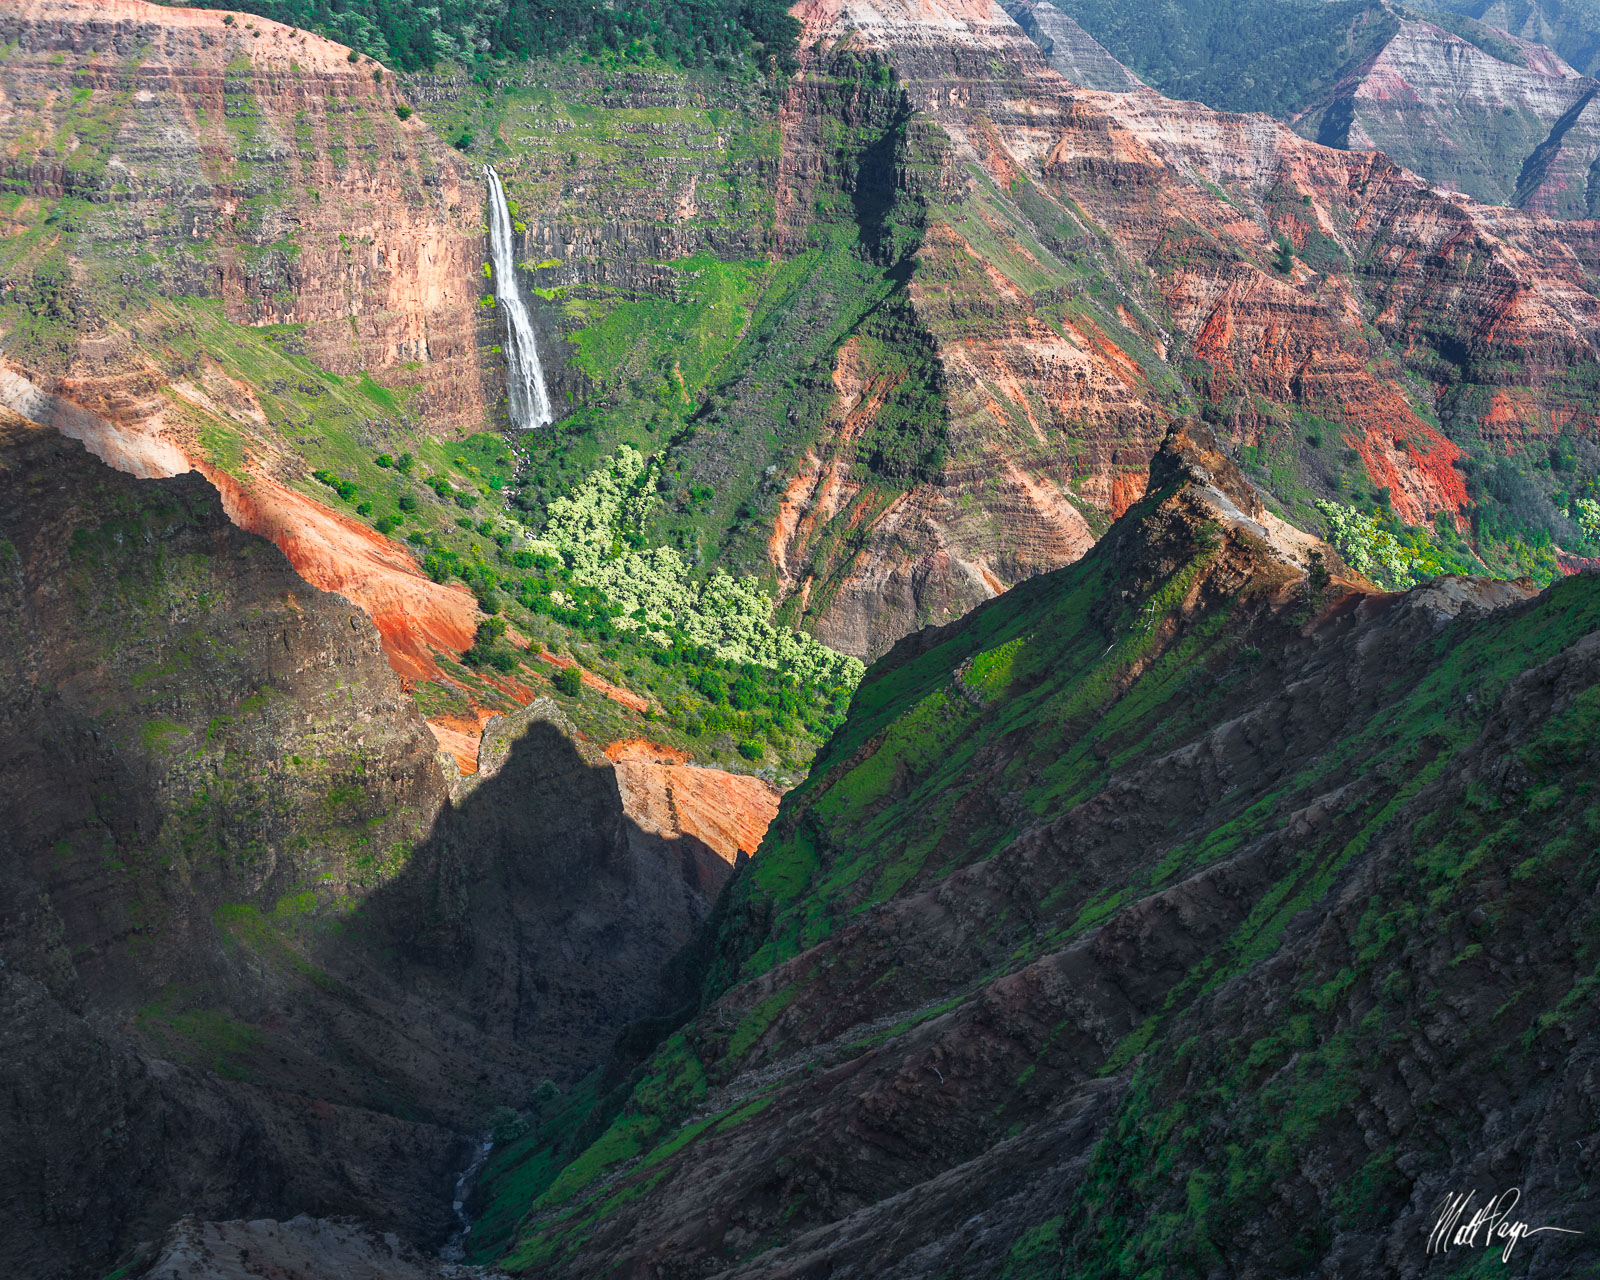 Hawaii, Kauai, Landscape, Waimea Canyon, Waipoo Falls, Waterfall, stunning, volcanic, rugged, green foliage, photo